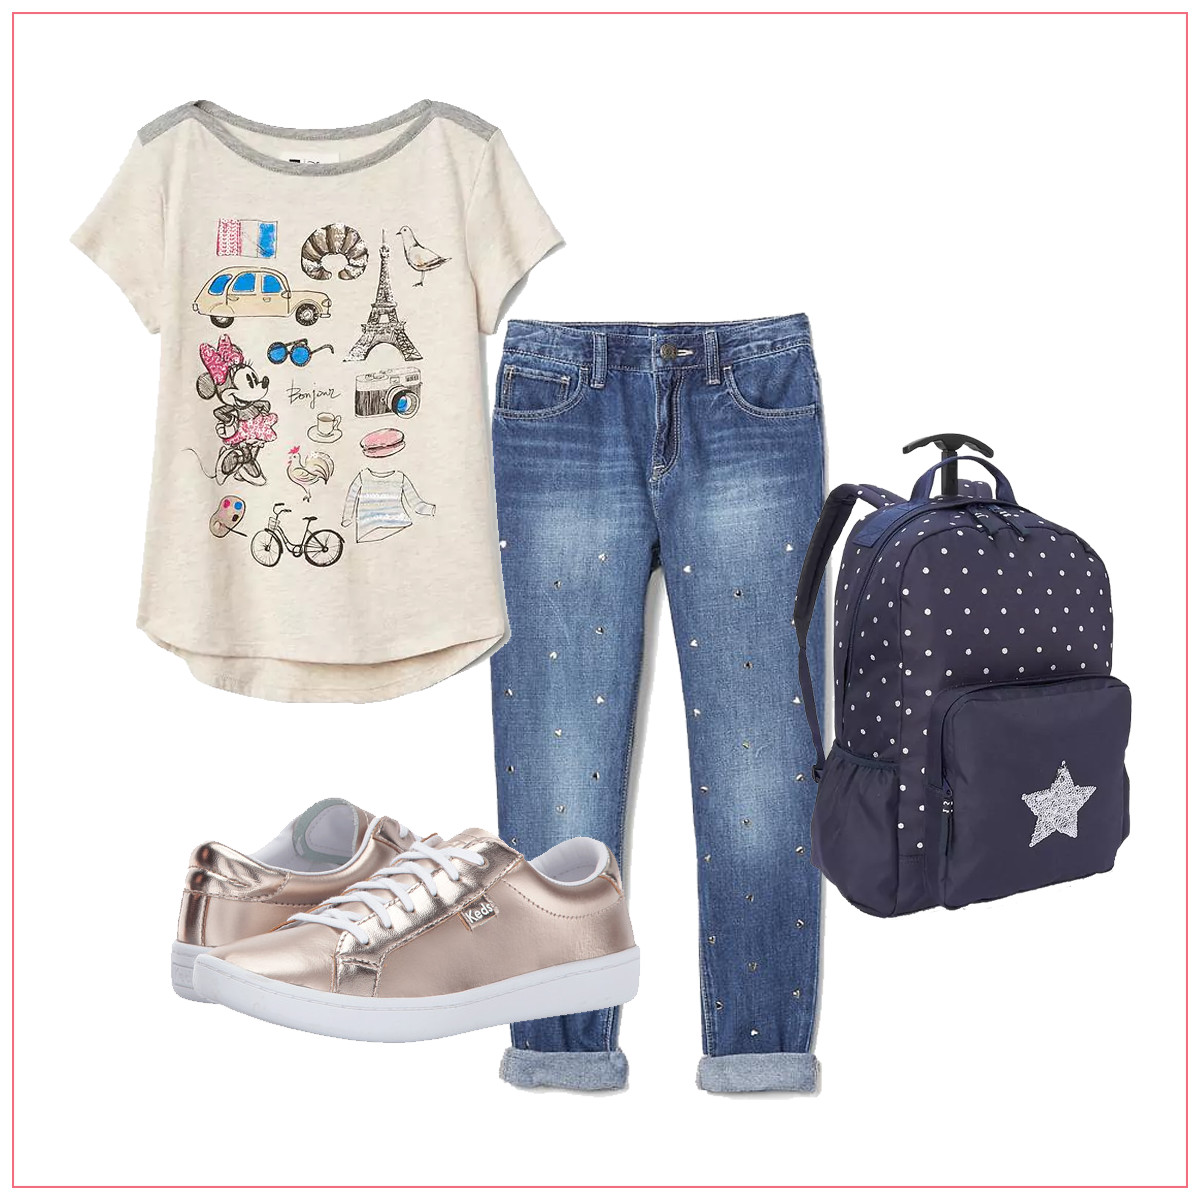 Jeans with a t-shirt, backpack, and metallic shoes